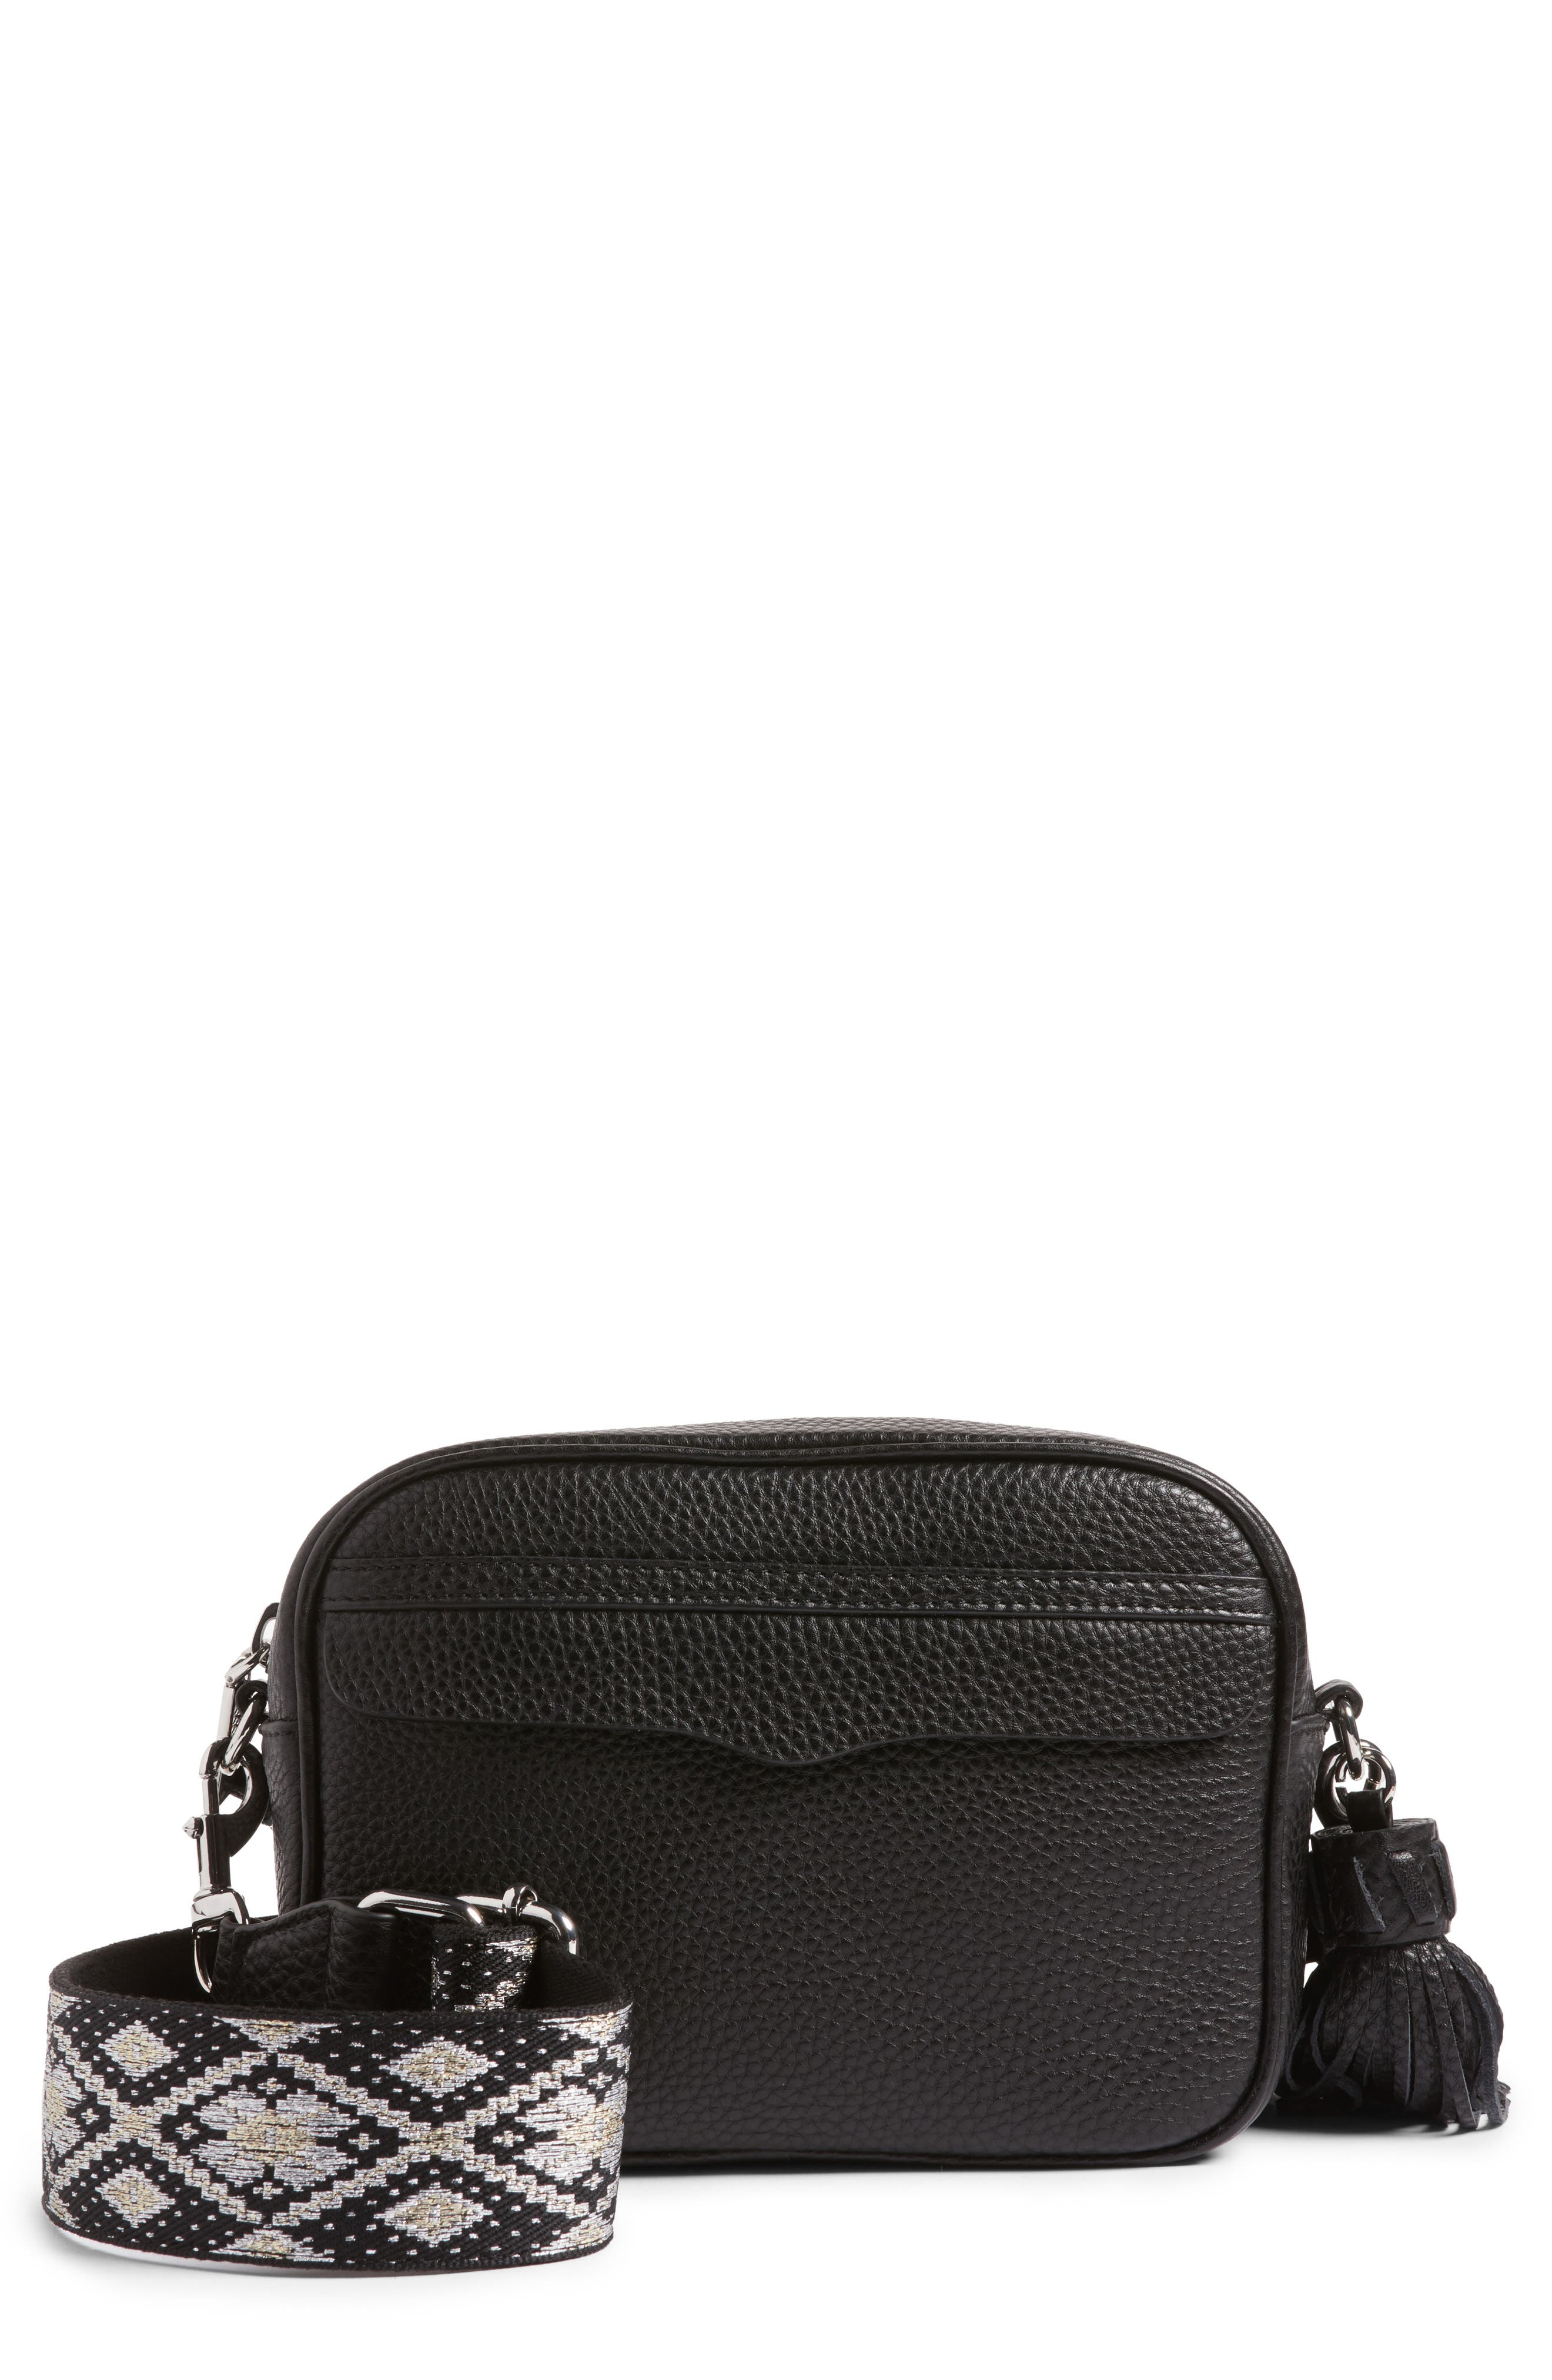 Leather Camera Bag with Guitar Strap,                         Main,                         color, Black/ Silver Hardware